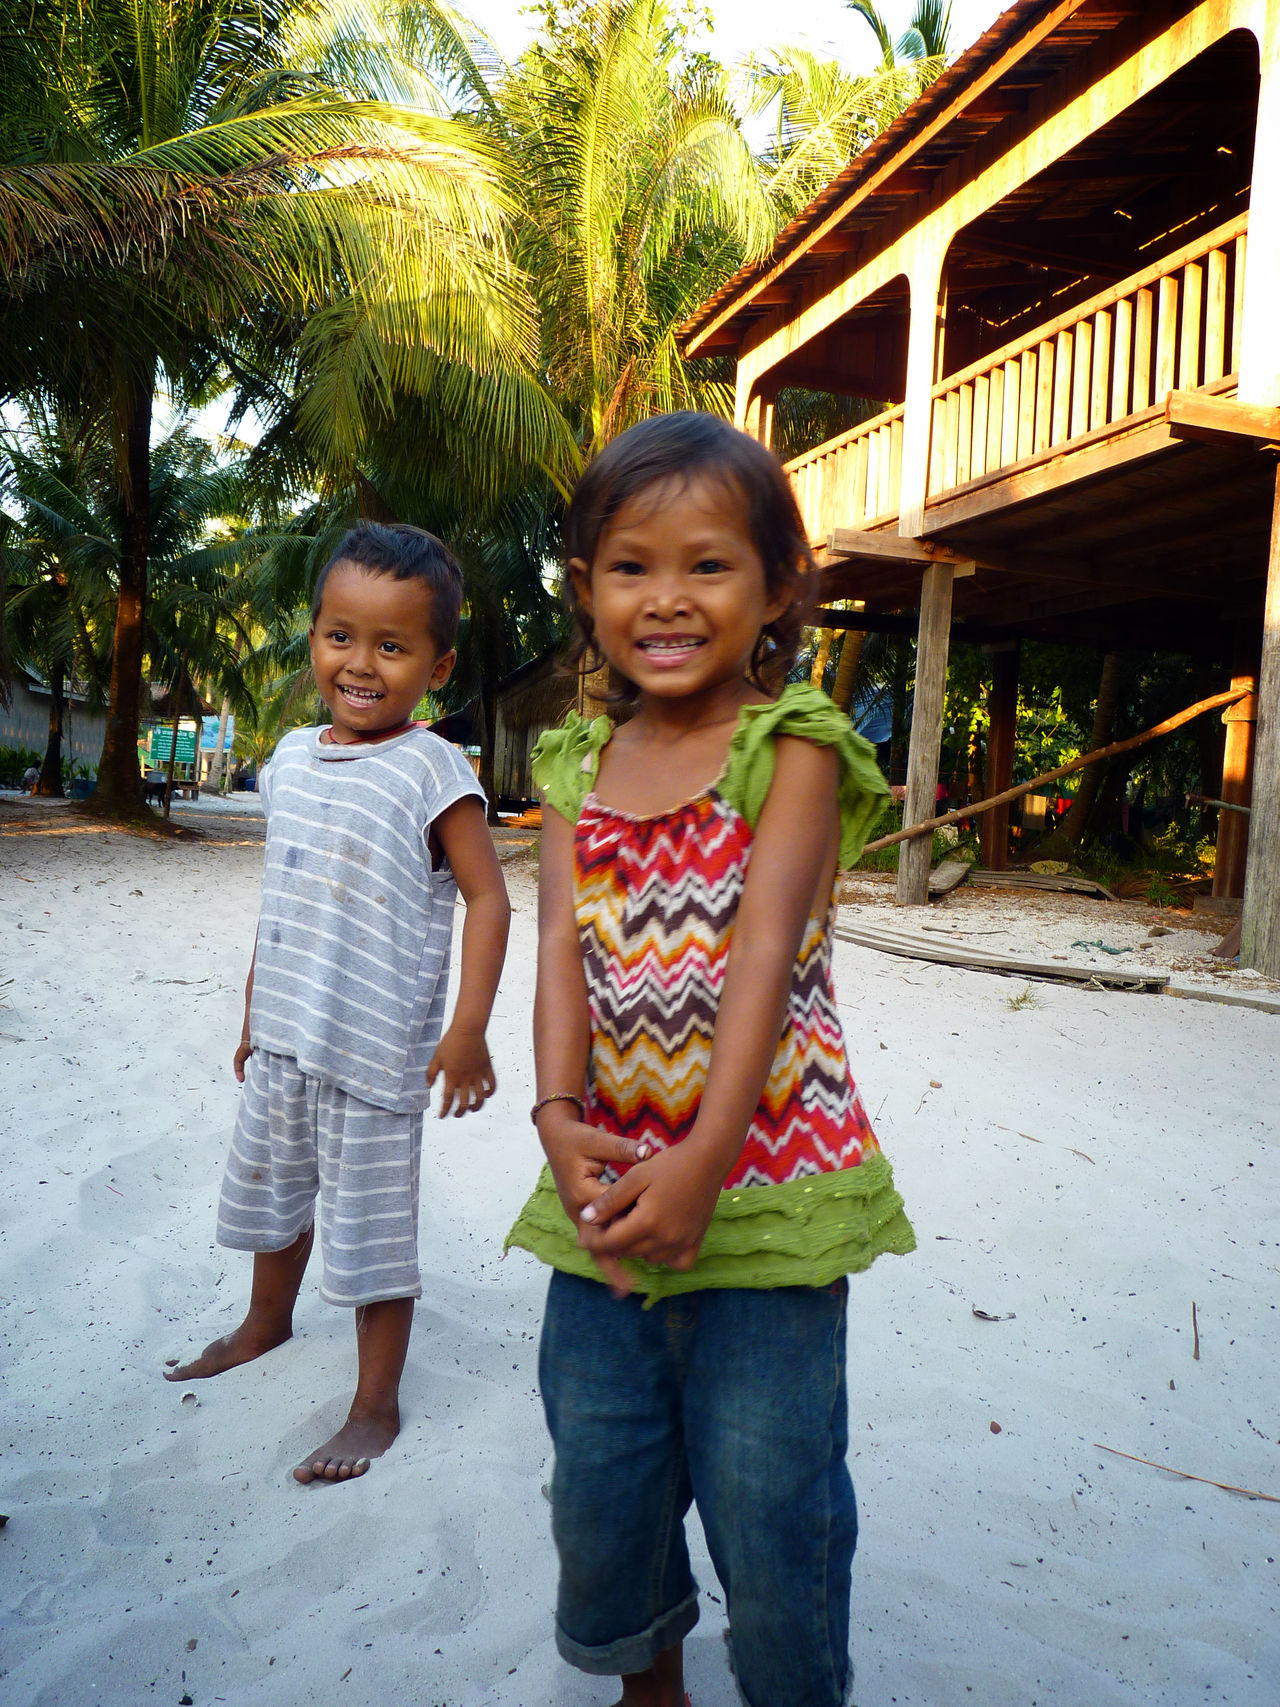 ASIA Asian Children Cambodia Childhood Composition Front View Happiness Innocence Lifestyles Looking At Camera Palm Trees Person Perspective Portrait Real People Sand Smiling Togetherness Travel Travel Photography Traveling Wooden House